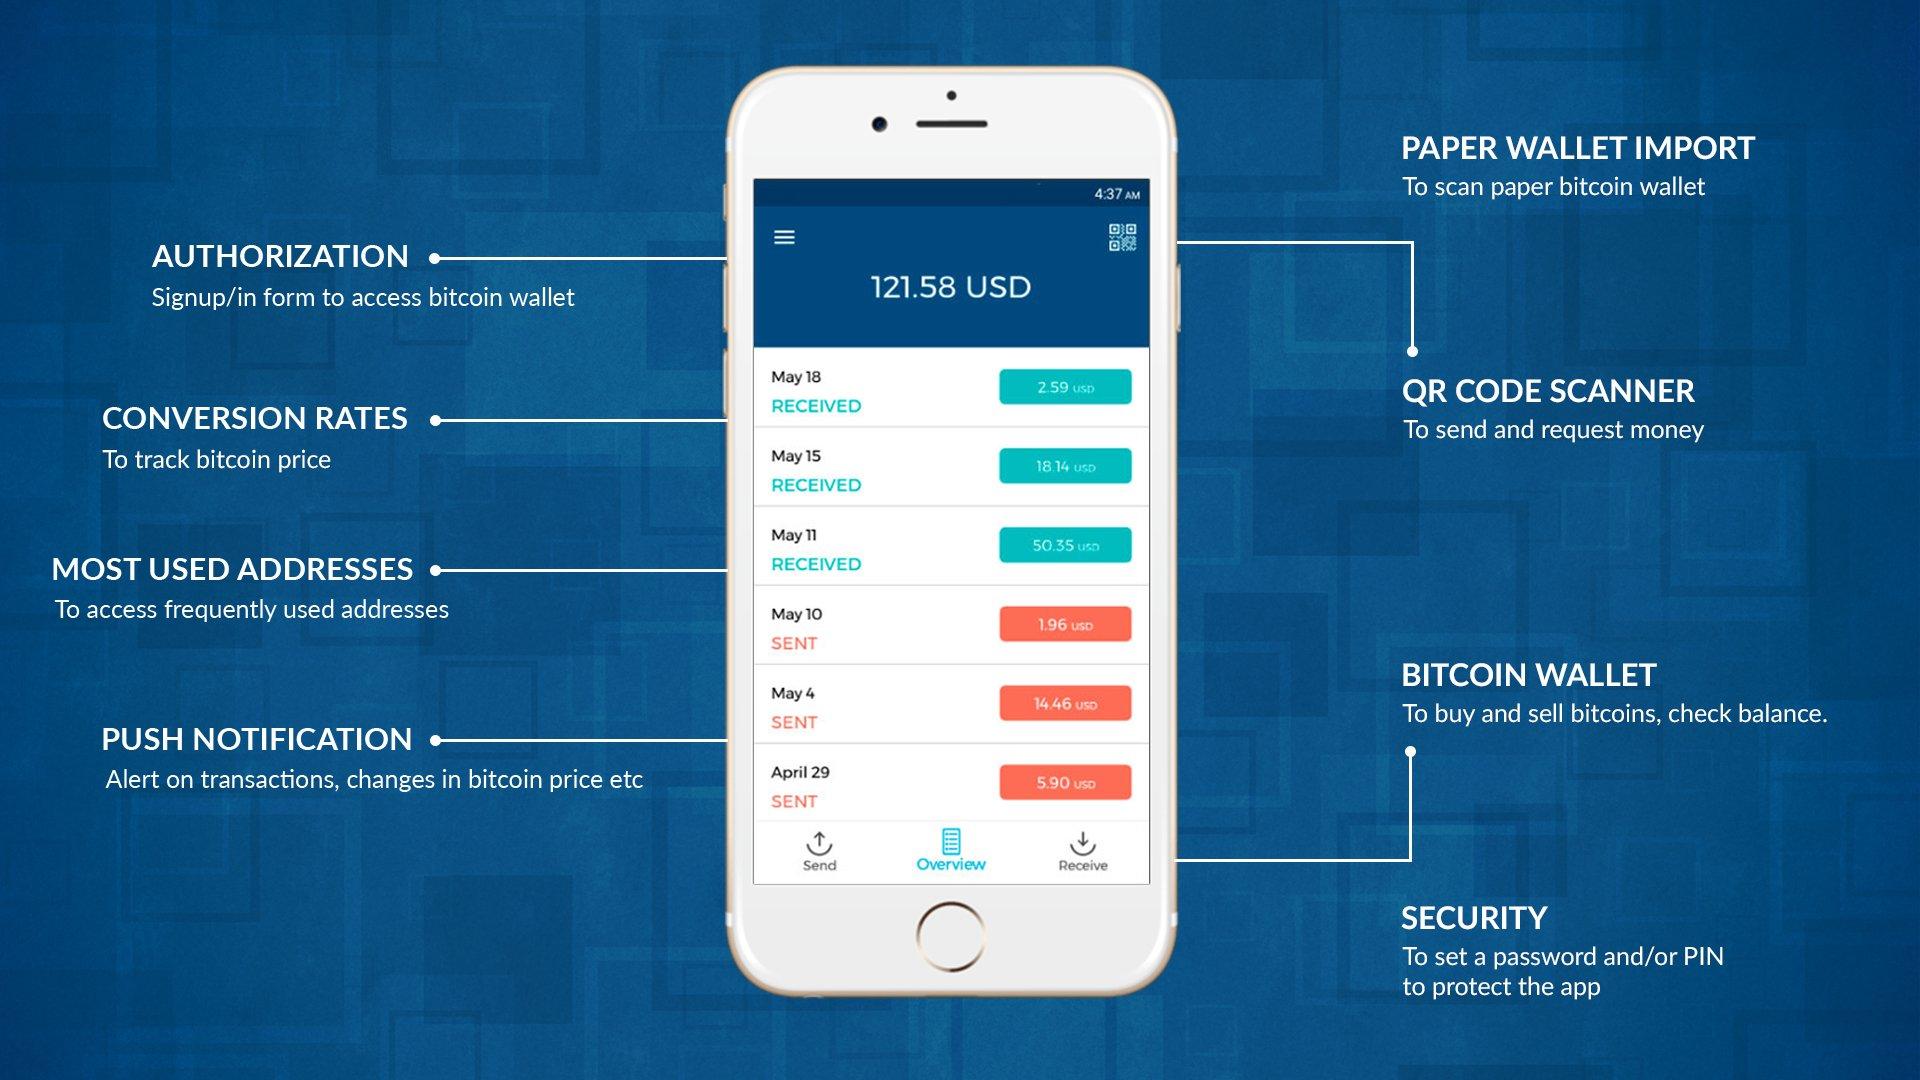 MAIN BITCOIN WALLET FEATURES